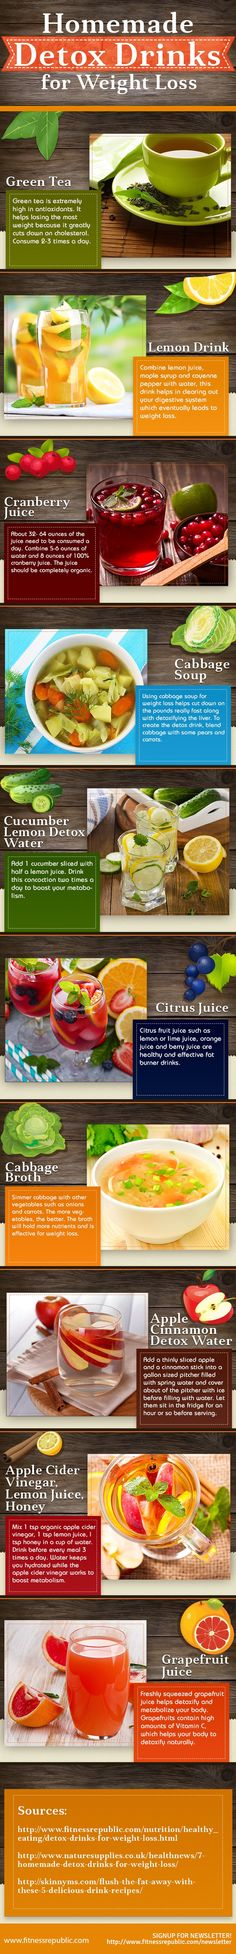 Longing to shed a few pounds, and fast? Using homemade detox drinks for weight loss has become very popular in recent years, as it's a natural, organic and easy way to slim down quickly.  #WeightLoss #HealthBenefits #totalbodytransformation